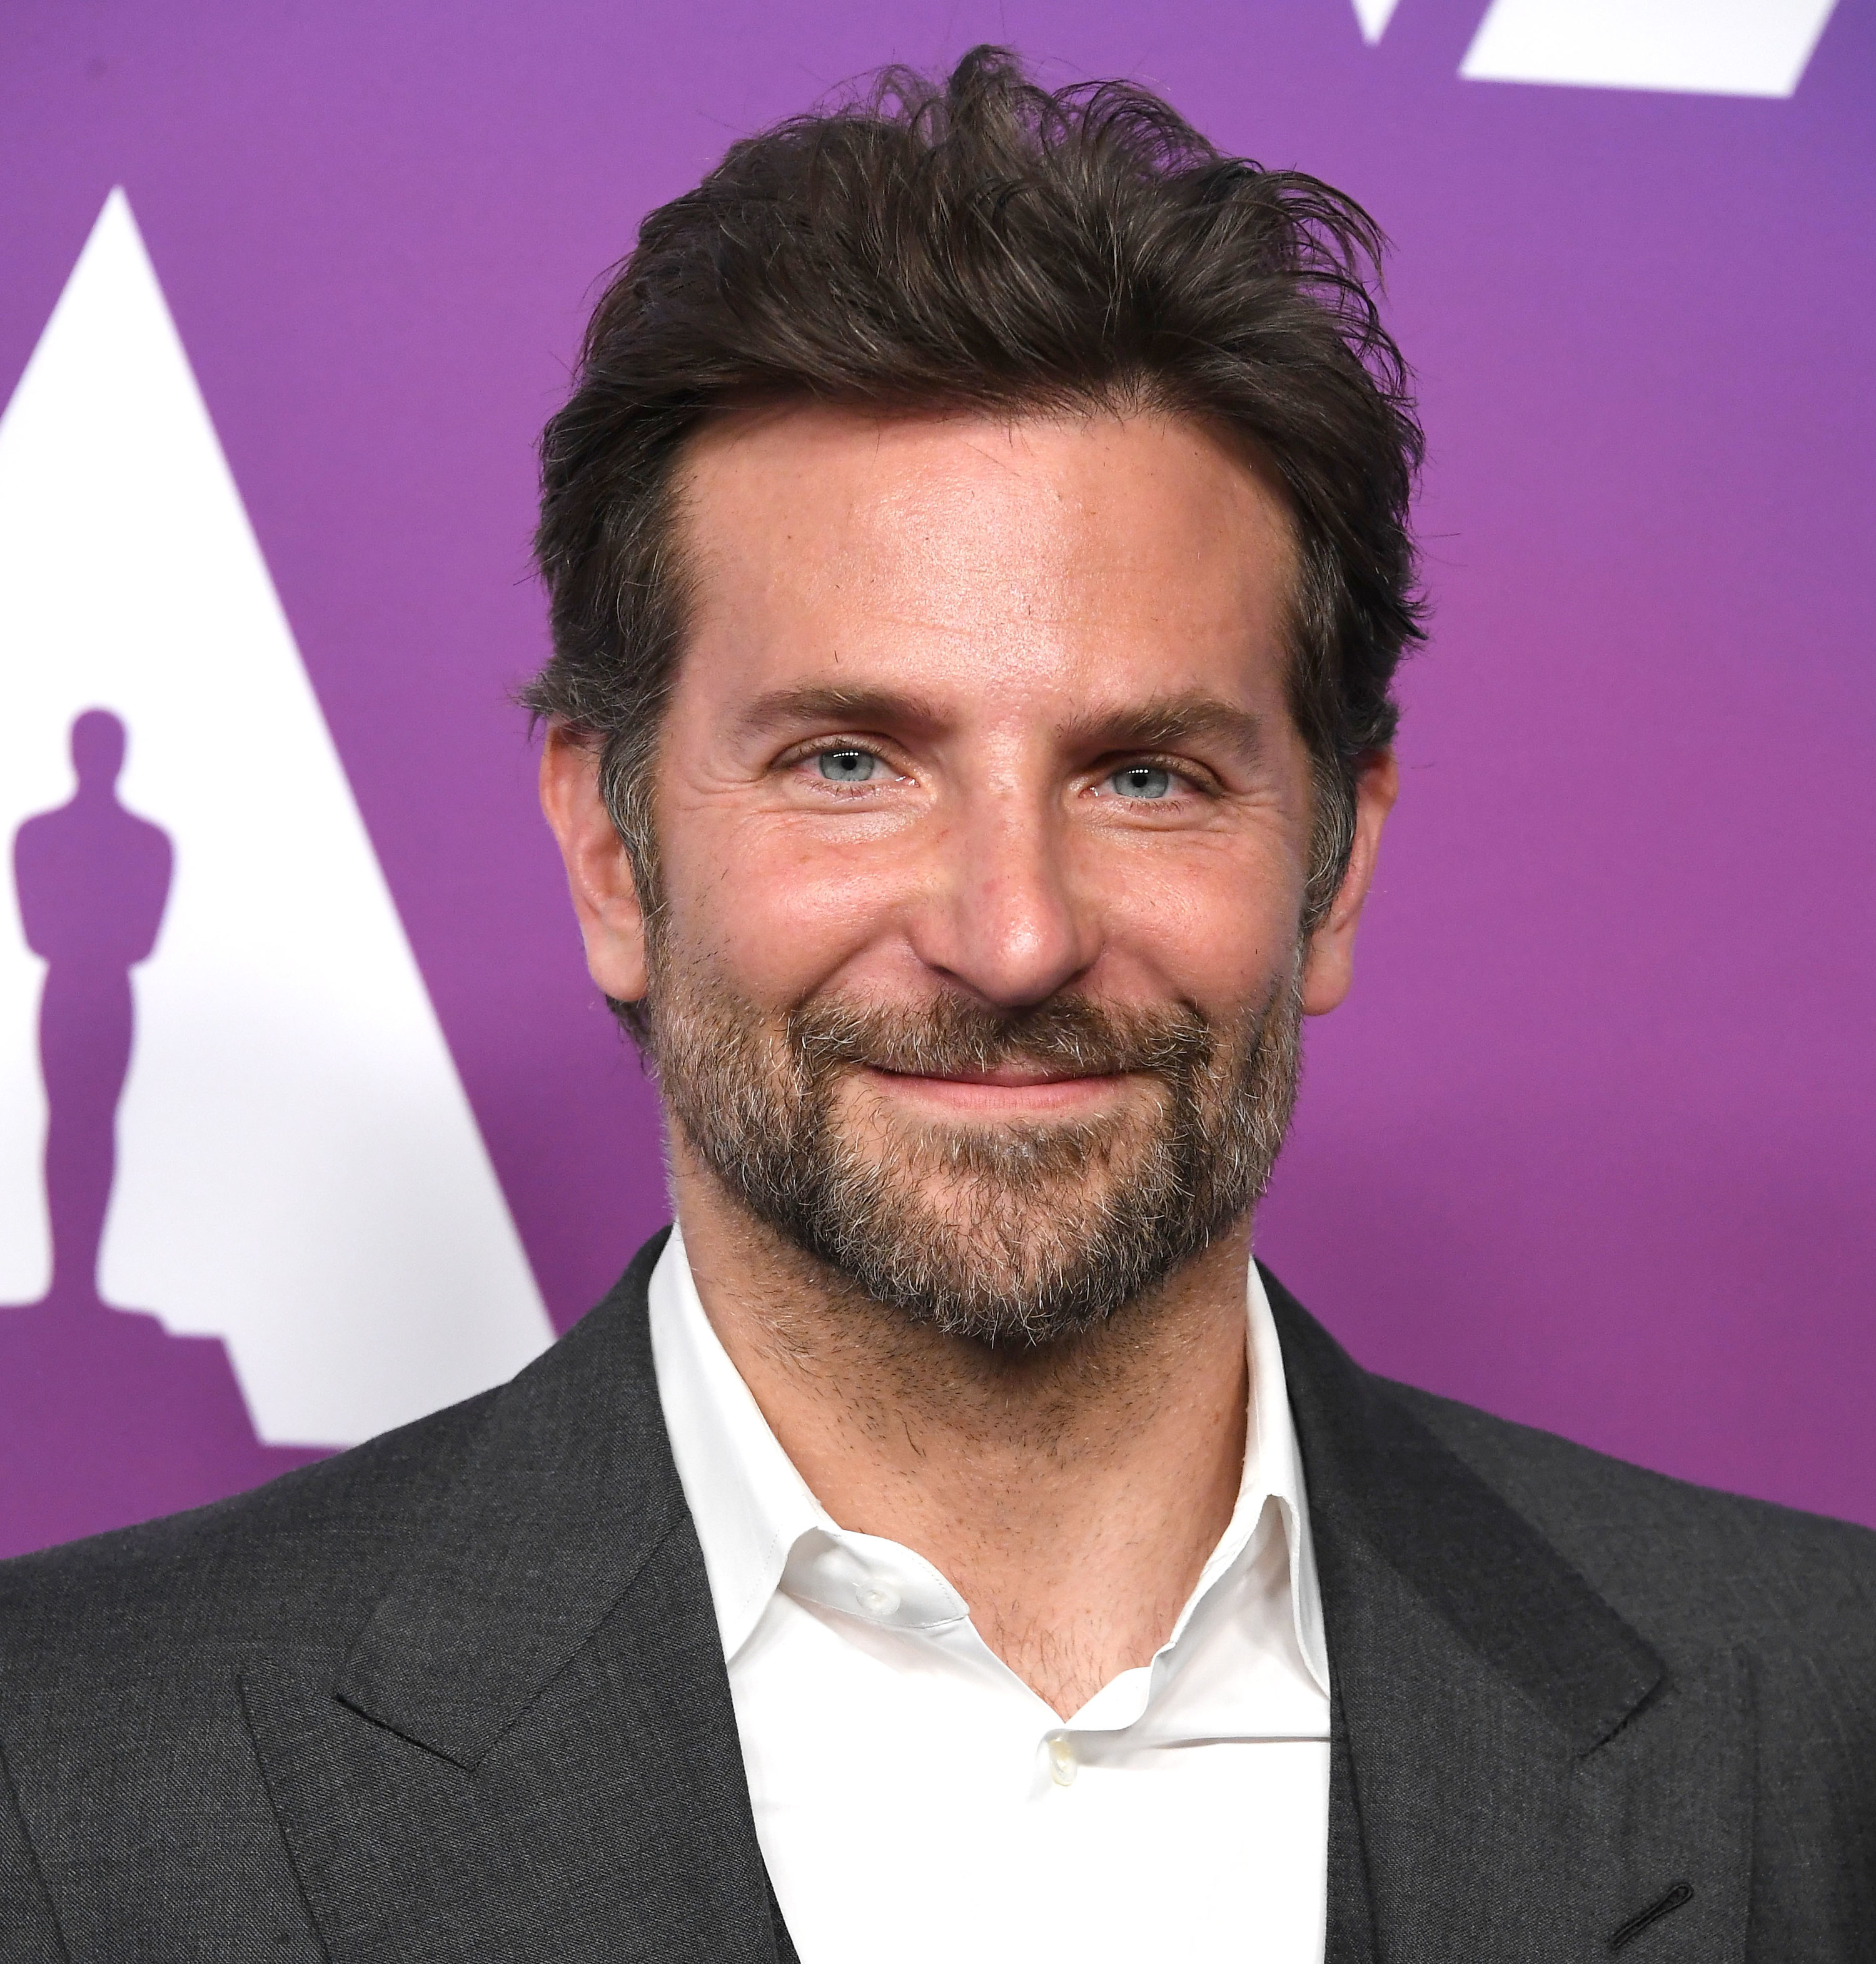 Bradley Cooper On Why Award Shows Are Meaningless